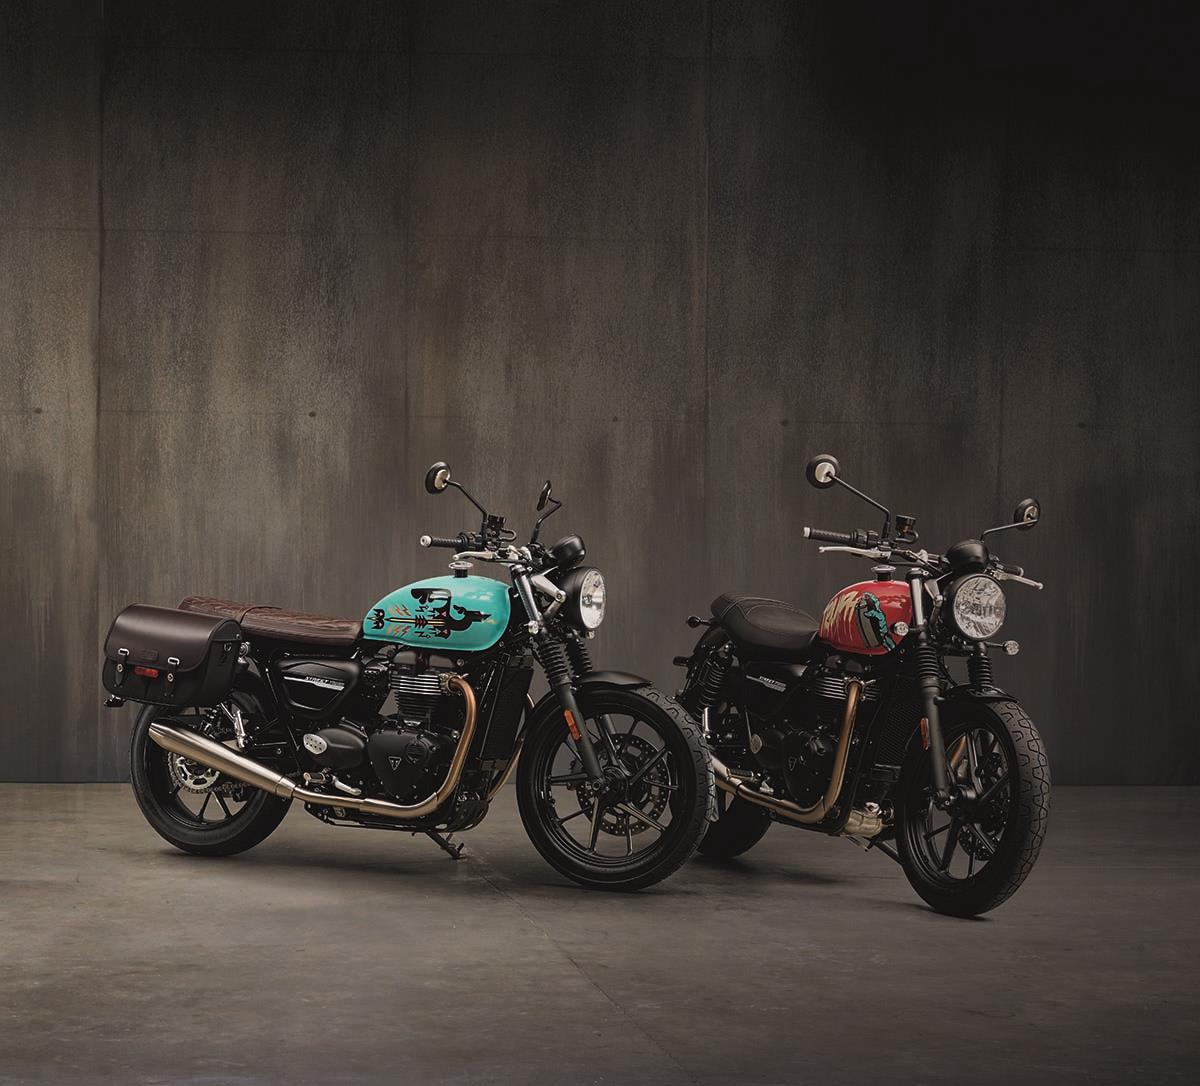 The Street Twin gets two inspiration kits, the Urban Ride and the Cafe Custom.